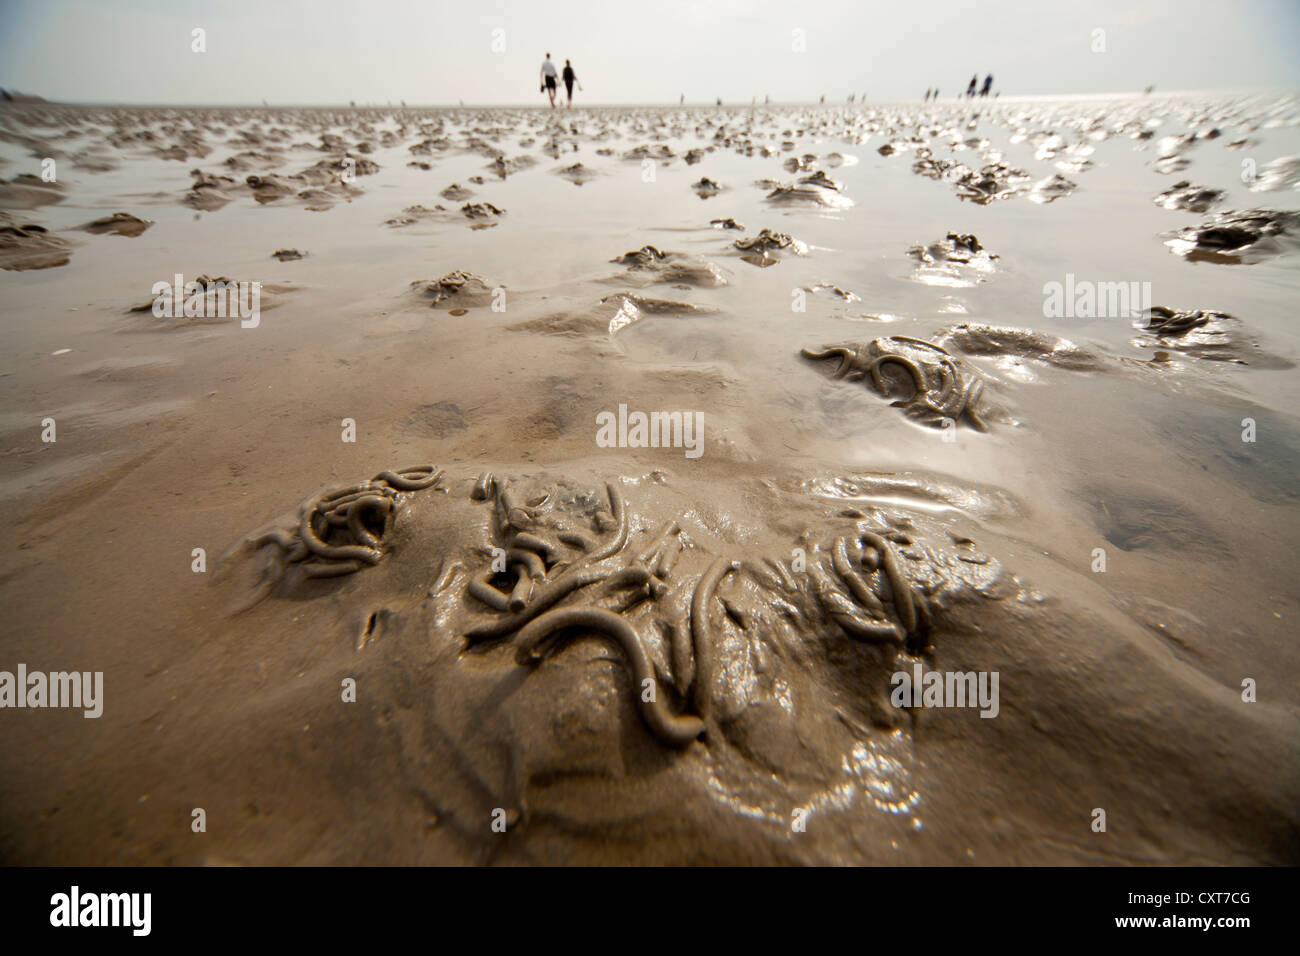 Lugworms and tourists on the mud flats during low tide, Wadden Sea, UNESCO World Heritage Site, Buesum, Dithmarschen - Stock Image